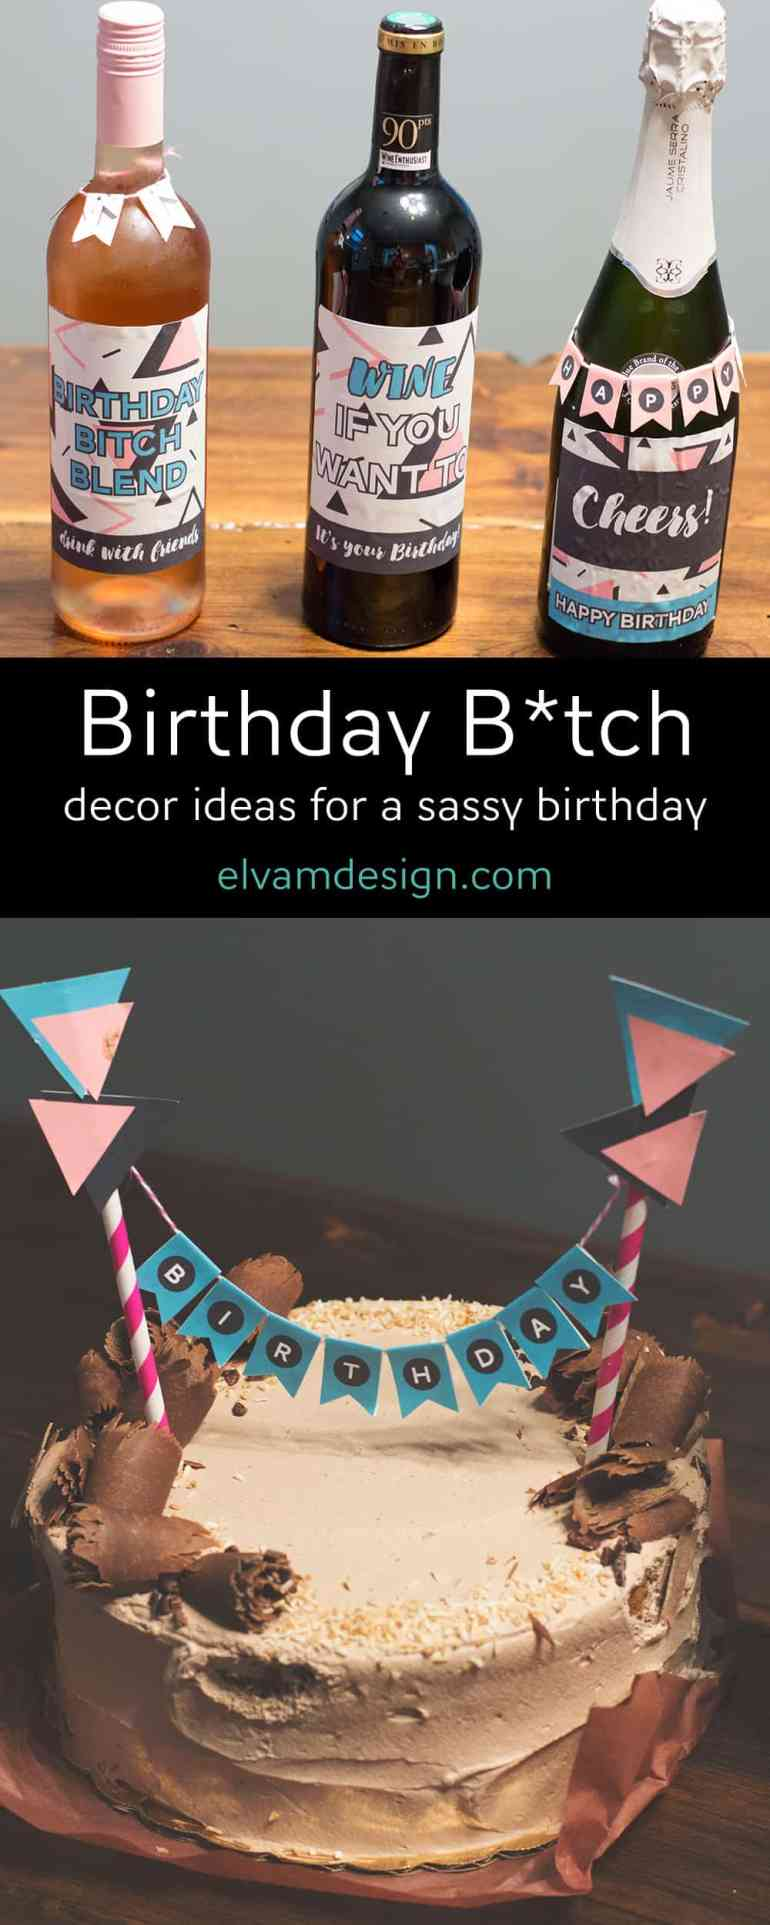 Birthday B*tch! Decor ideas for a sassy birthday from Elva M Design Studio